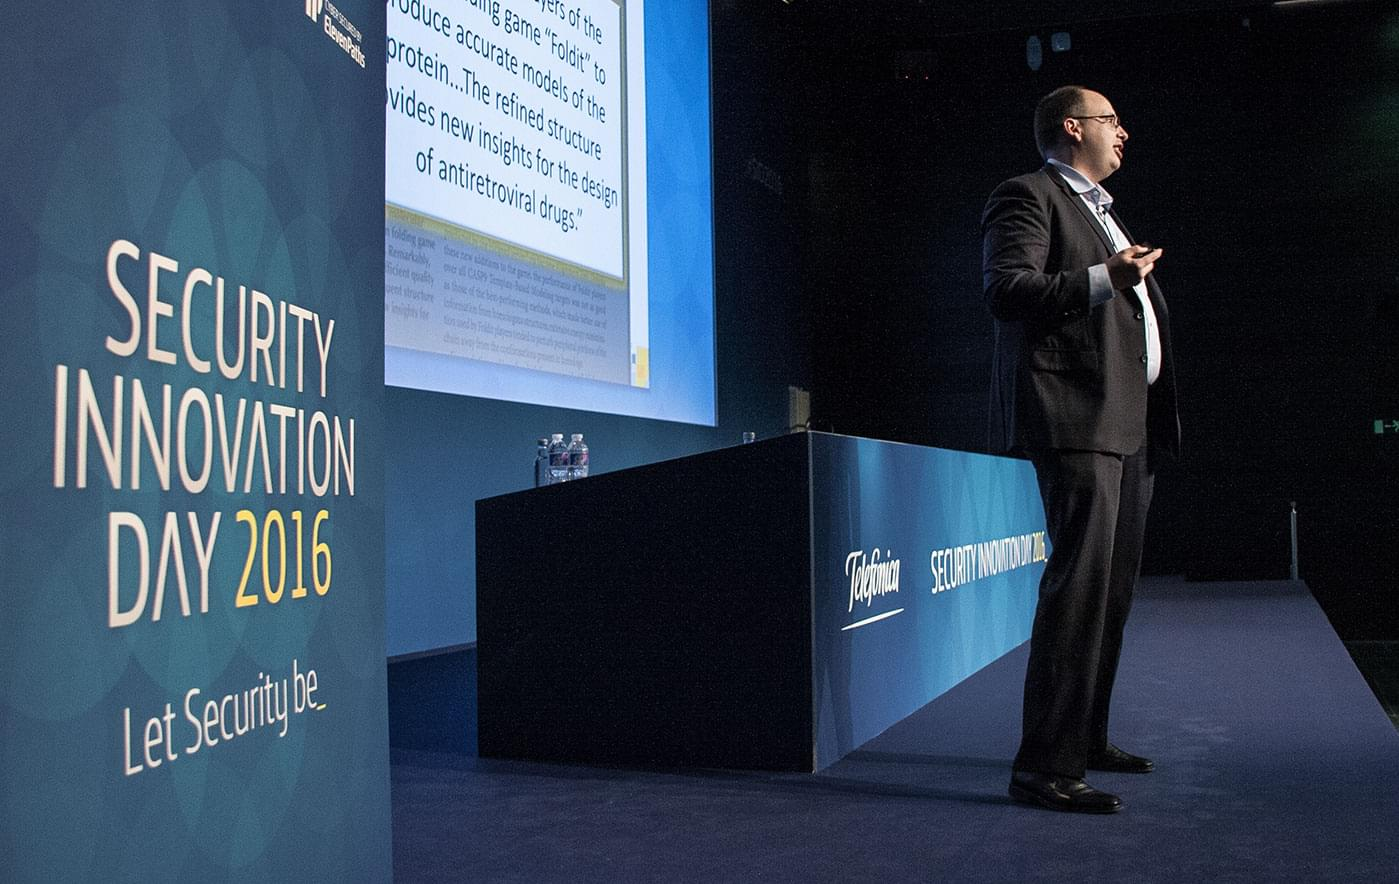 Security Innovation Day 2016 - Let Security Be_